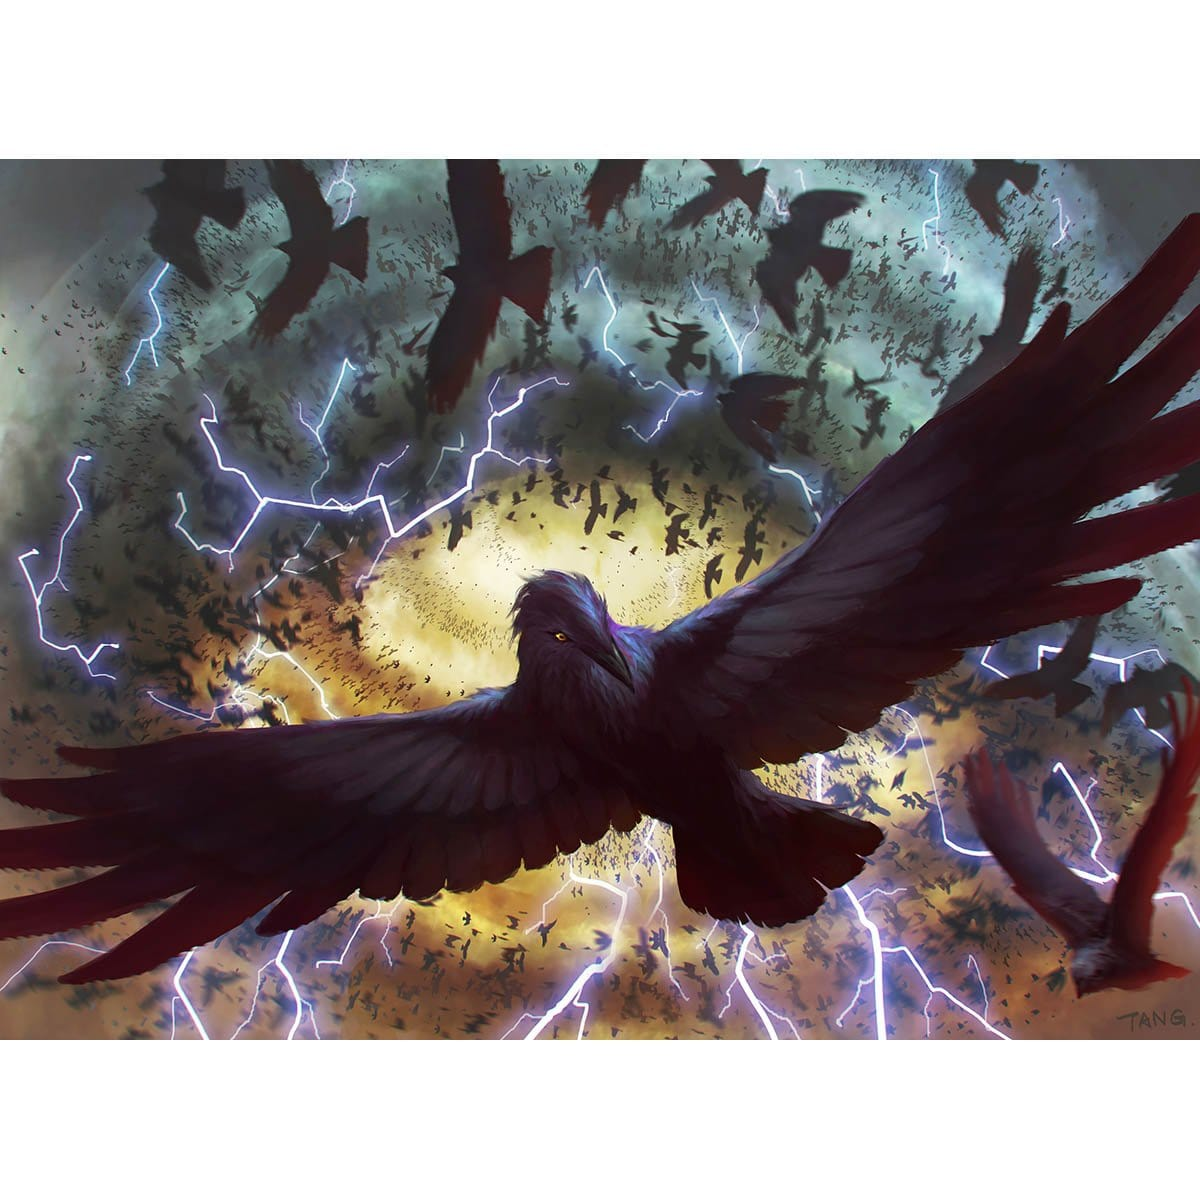 Crow Storm Print - Print - Original Magic Art - Accessories for Magic the Gathering and other card games